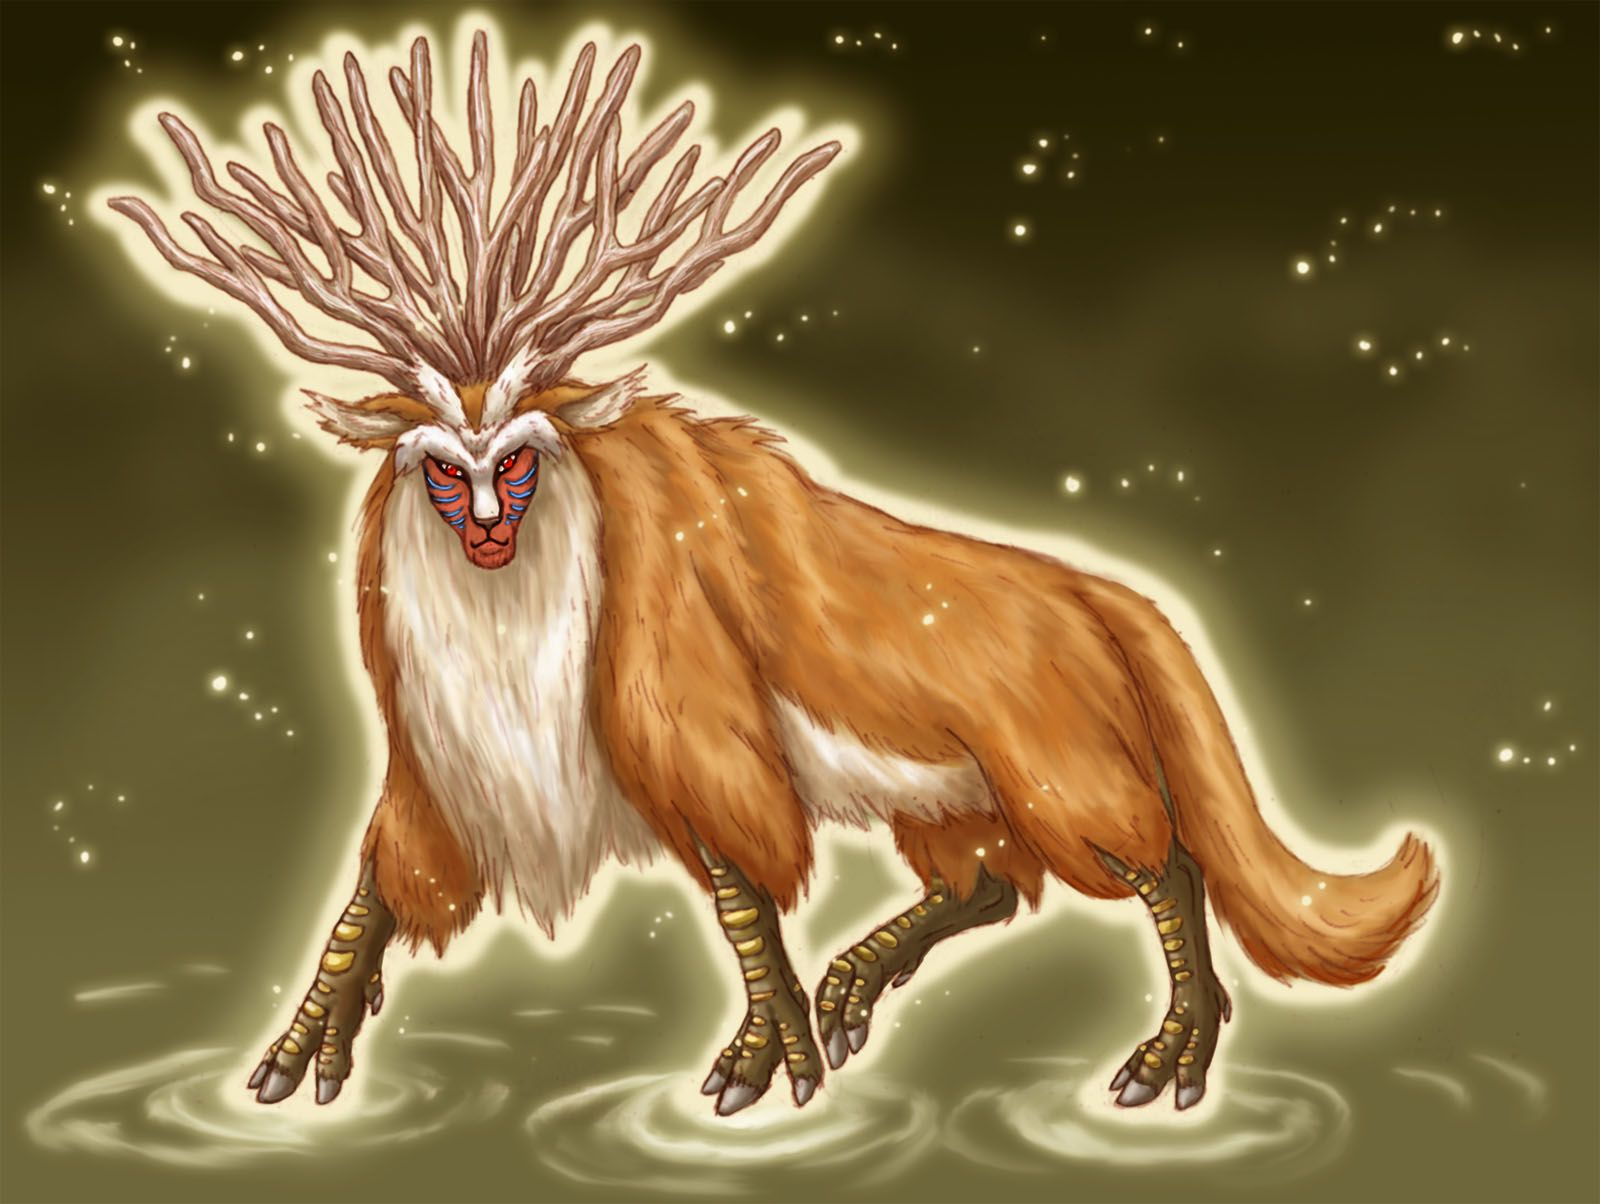 Cool Mythical Creatures Google Search Cool Mythical Creatures